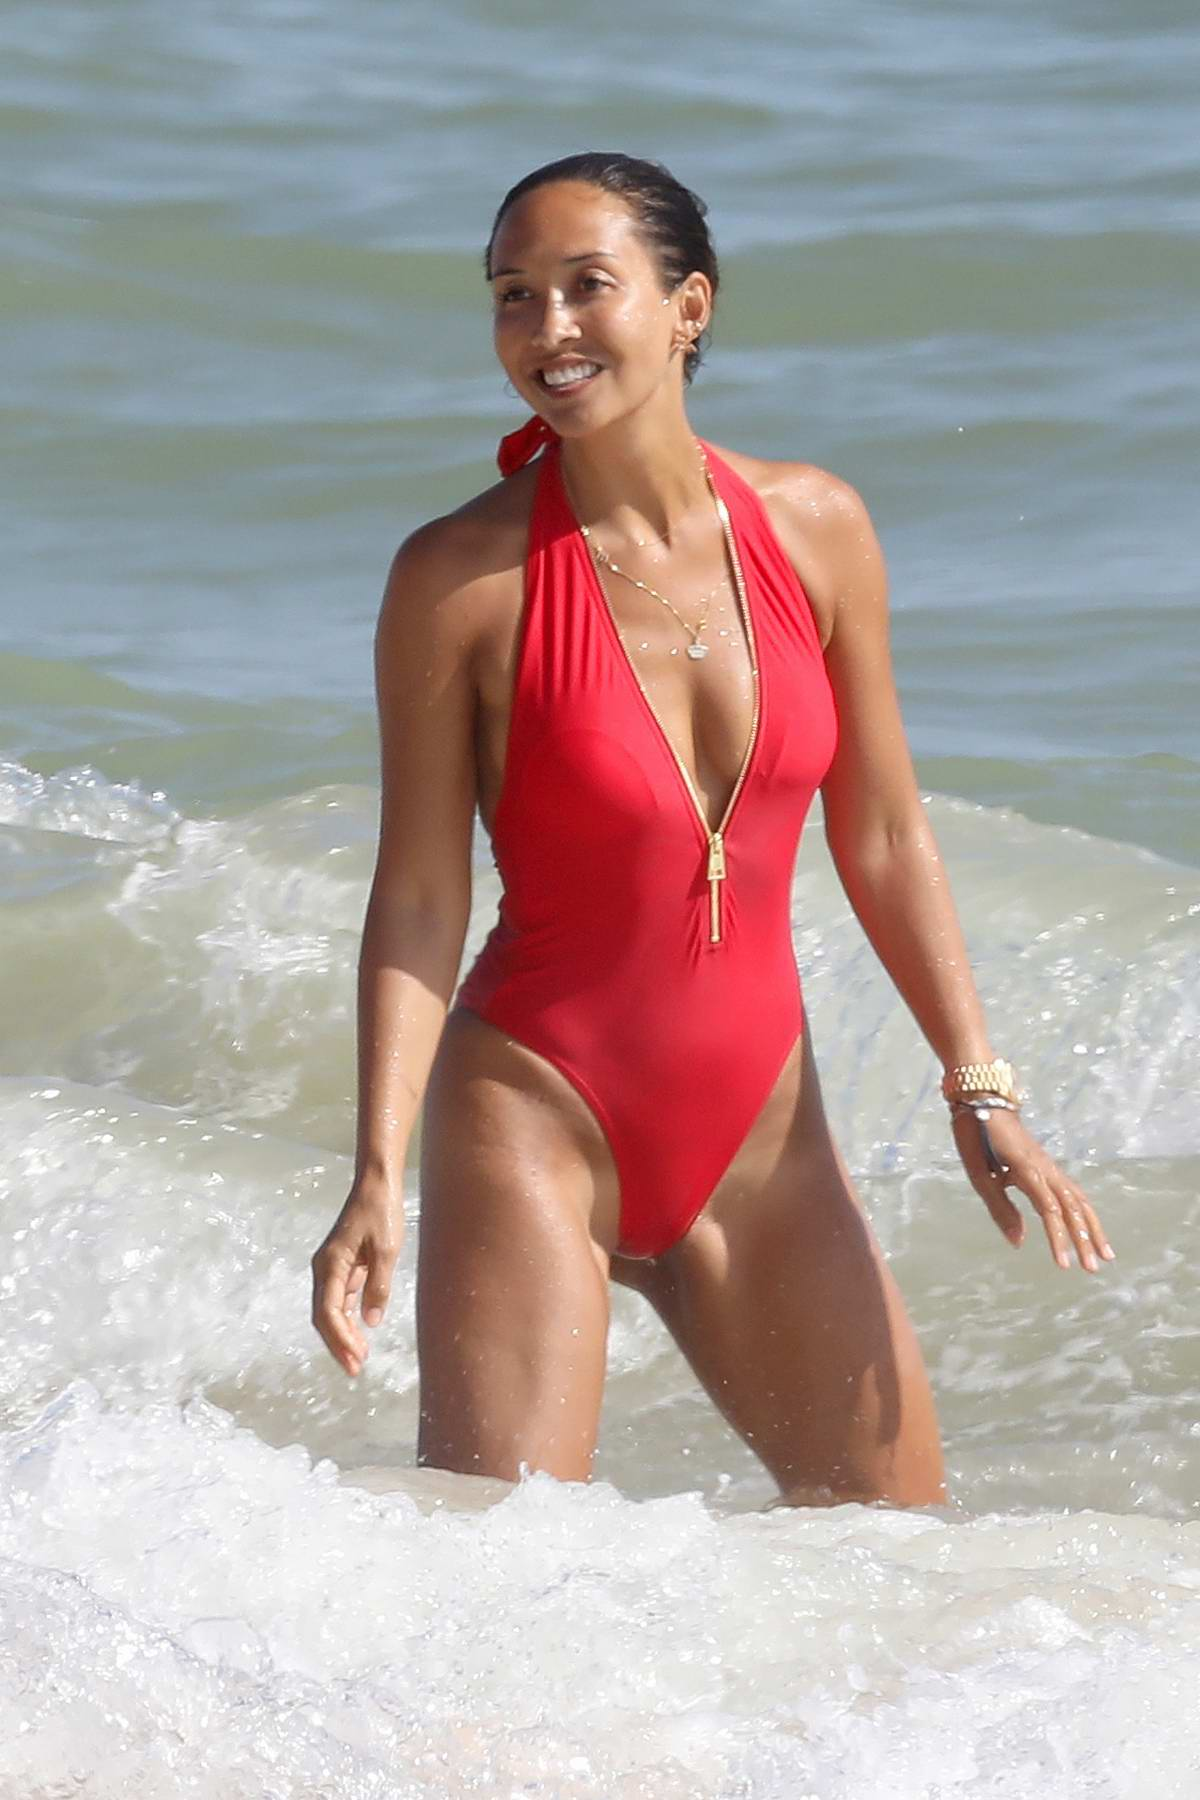 Myleene Klass was sporting red swimsuit as she enjoyed some downtime during holiday in Portugal